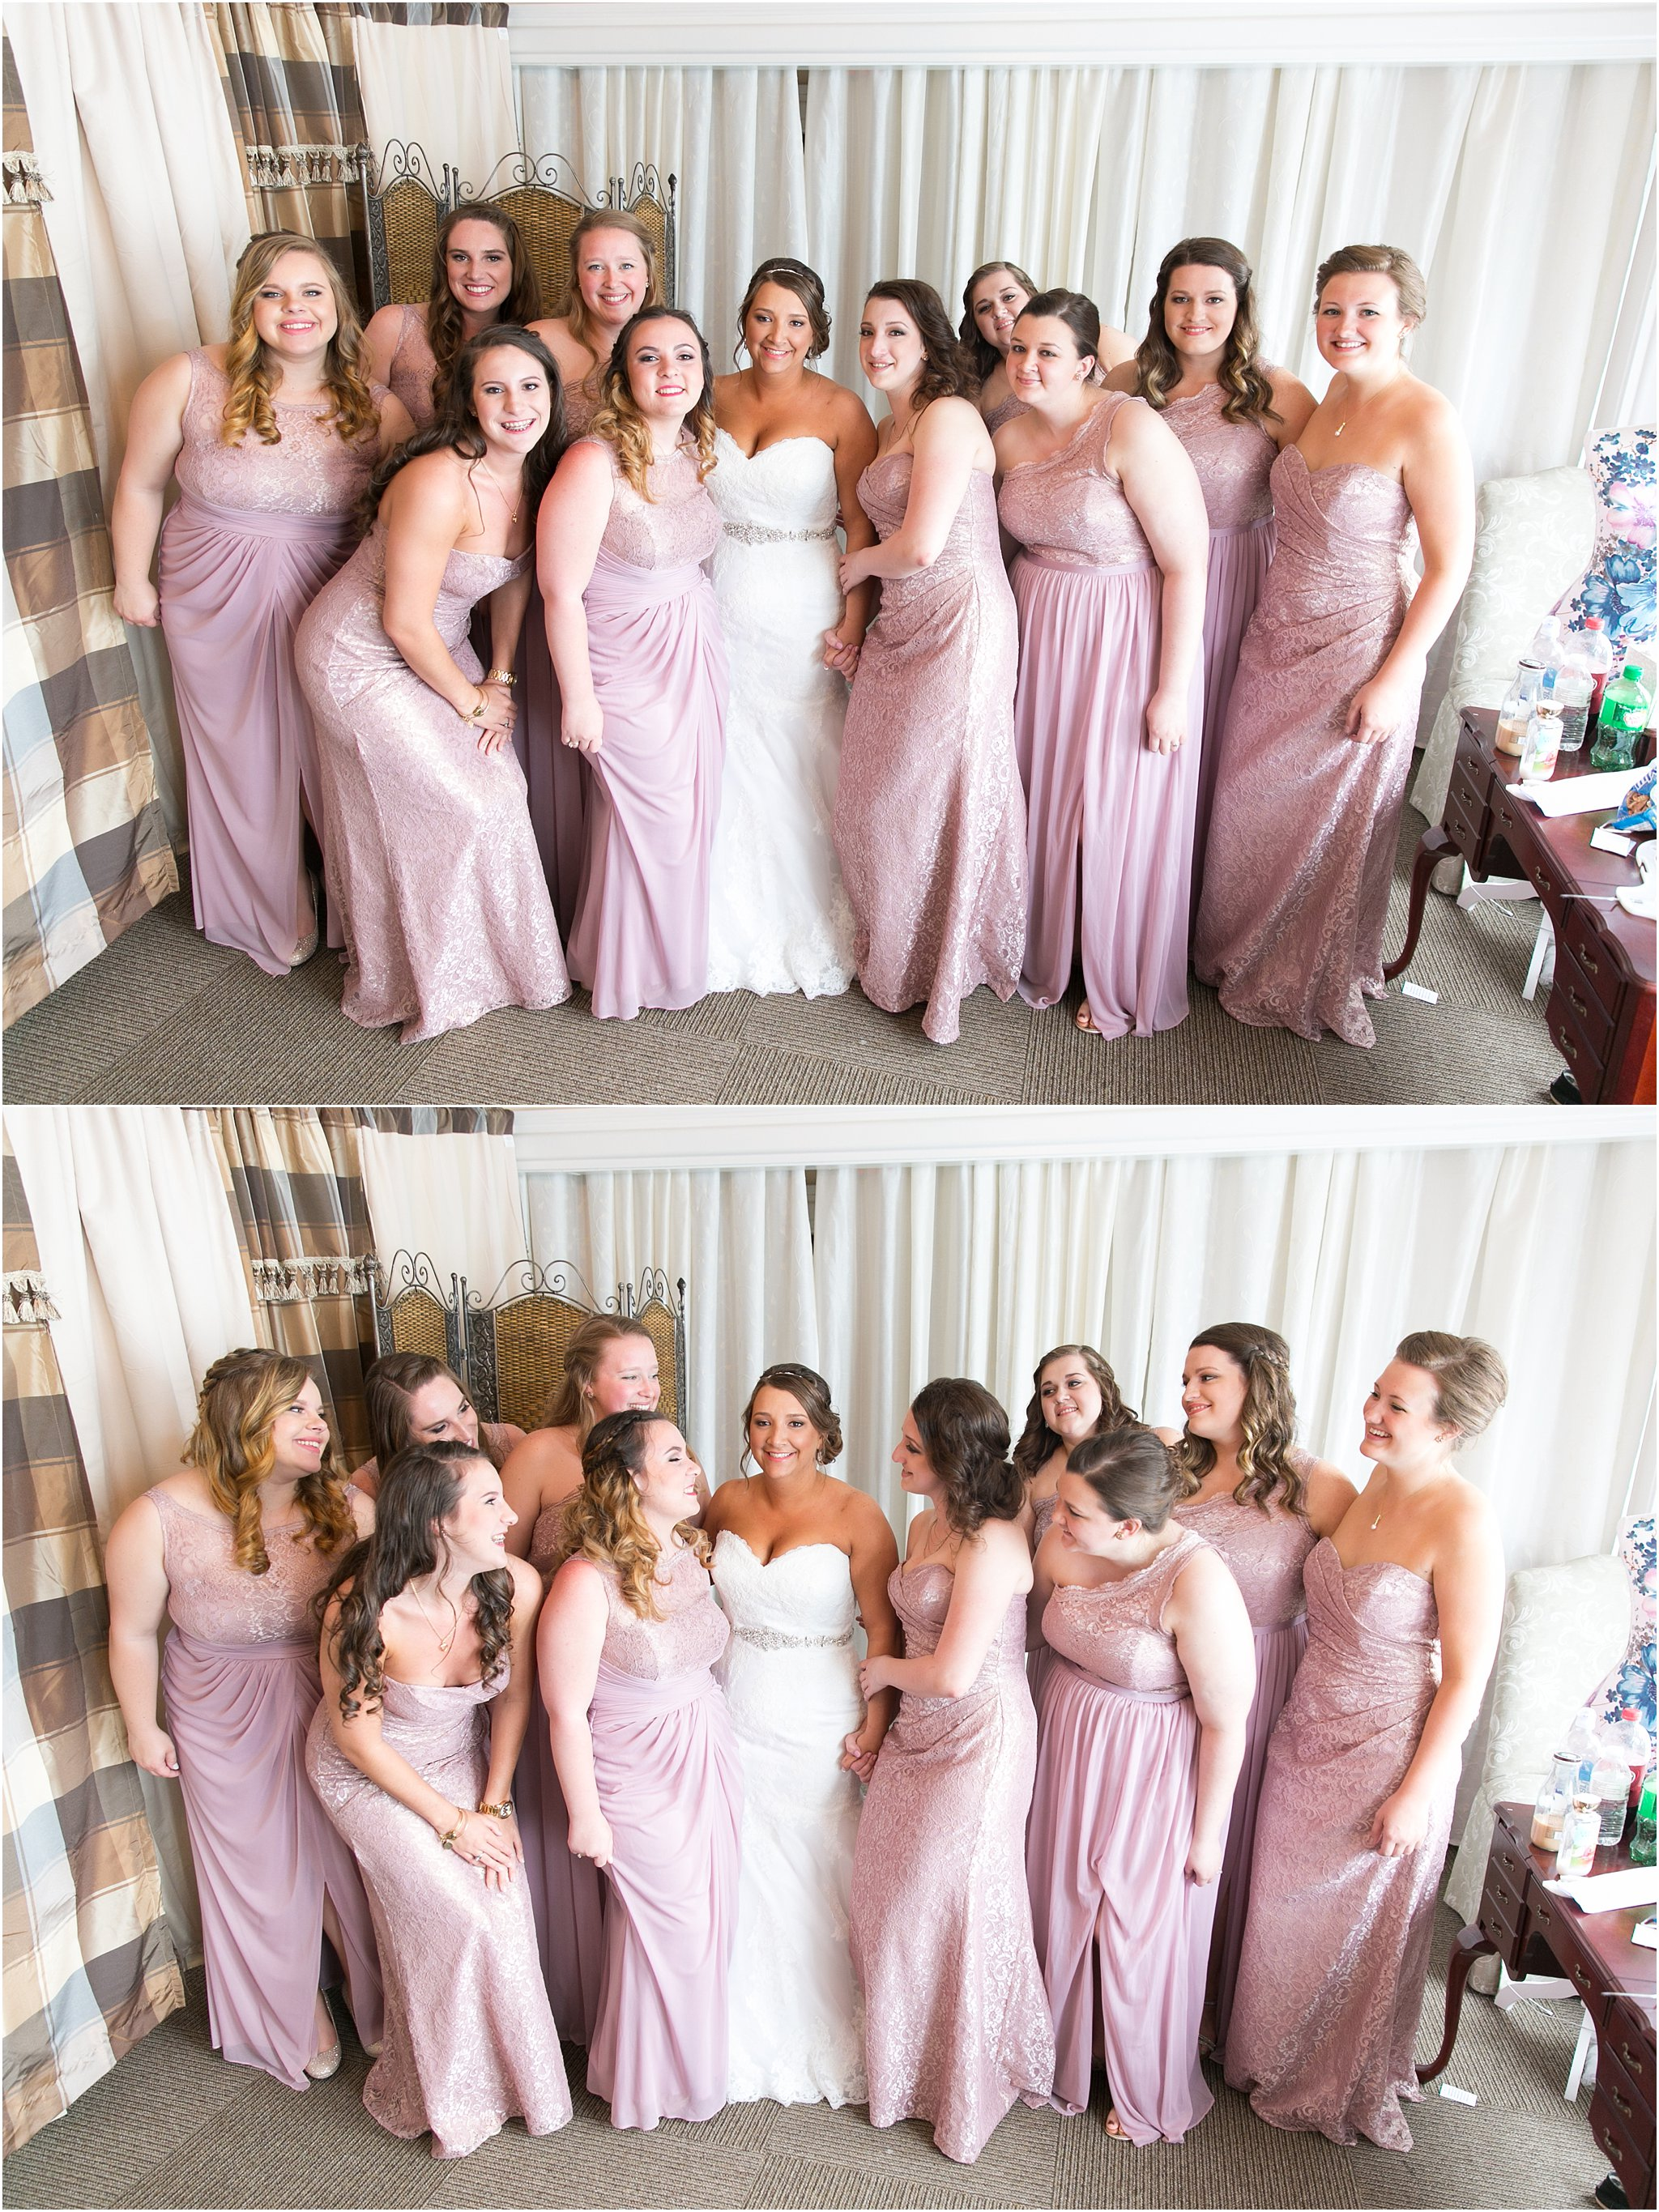 jessica_ryan_photography_wedding_suffolk_obici_house_wedding_0389